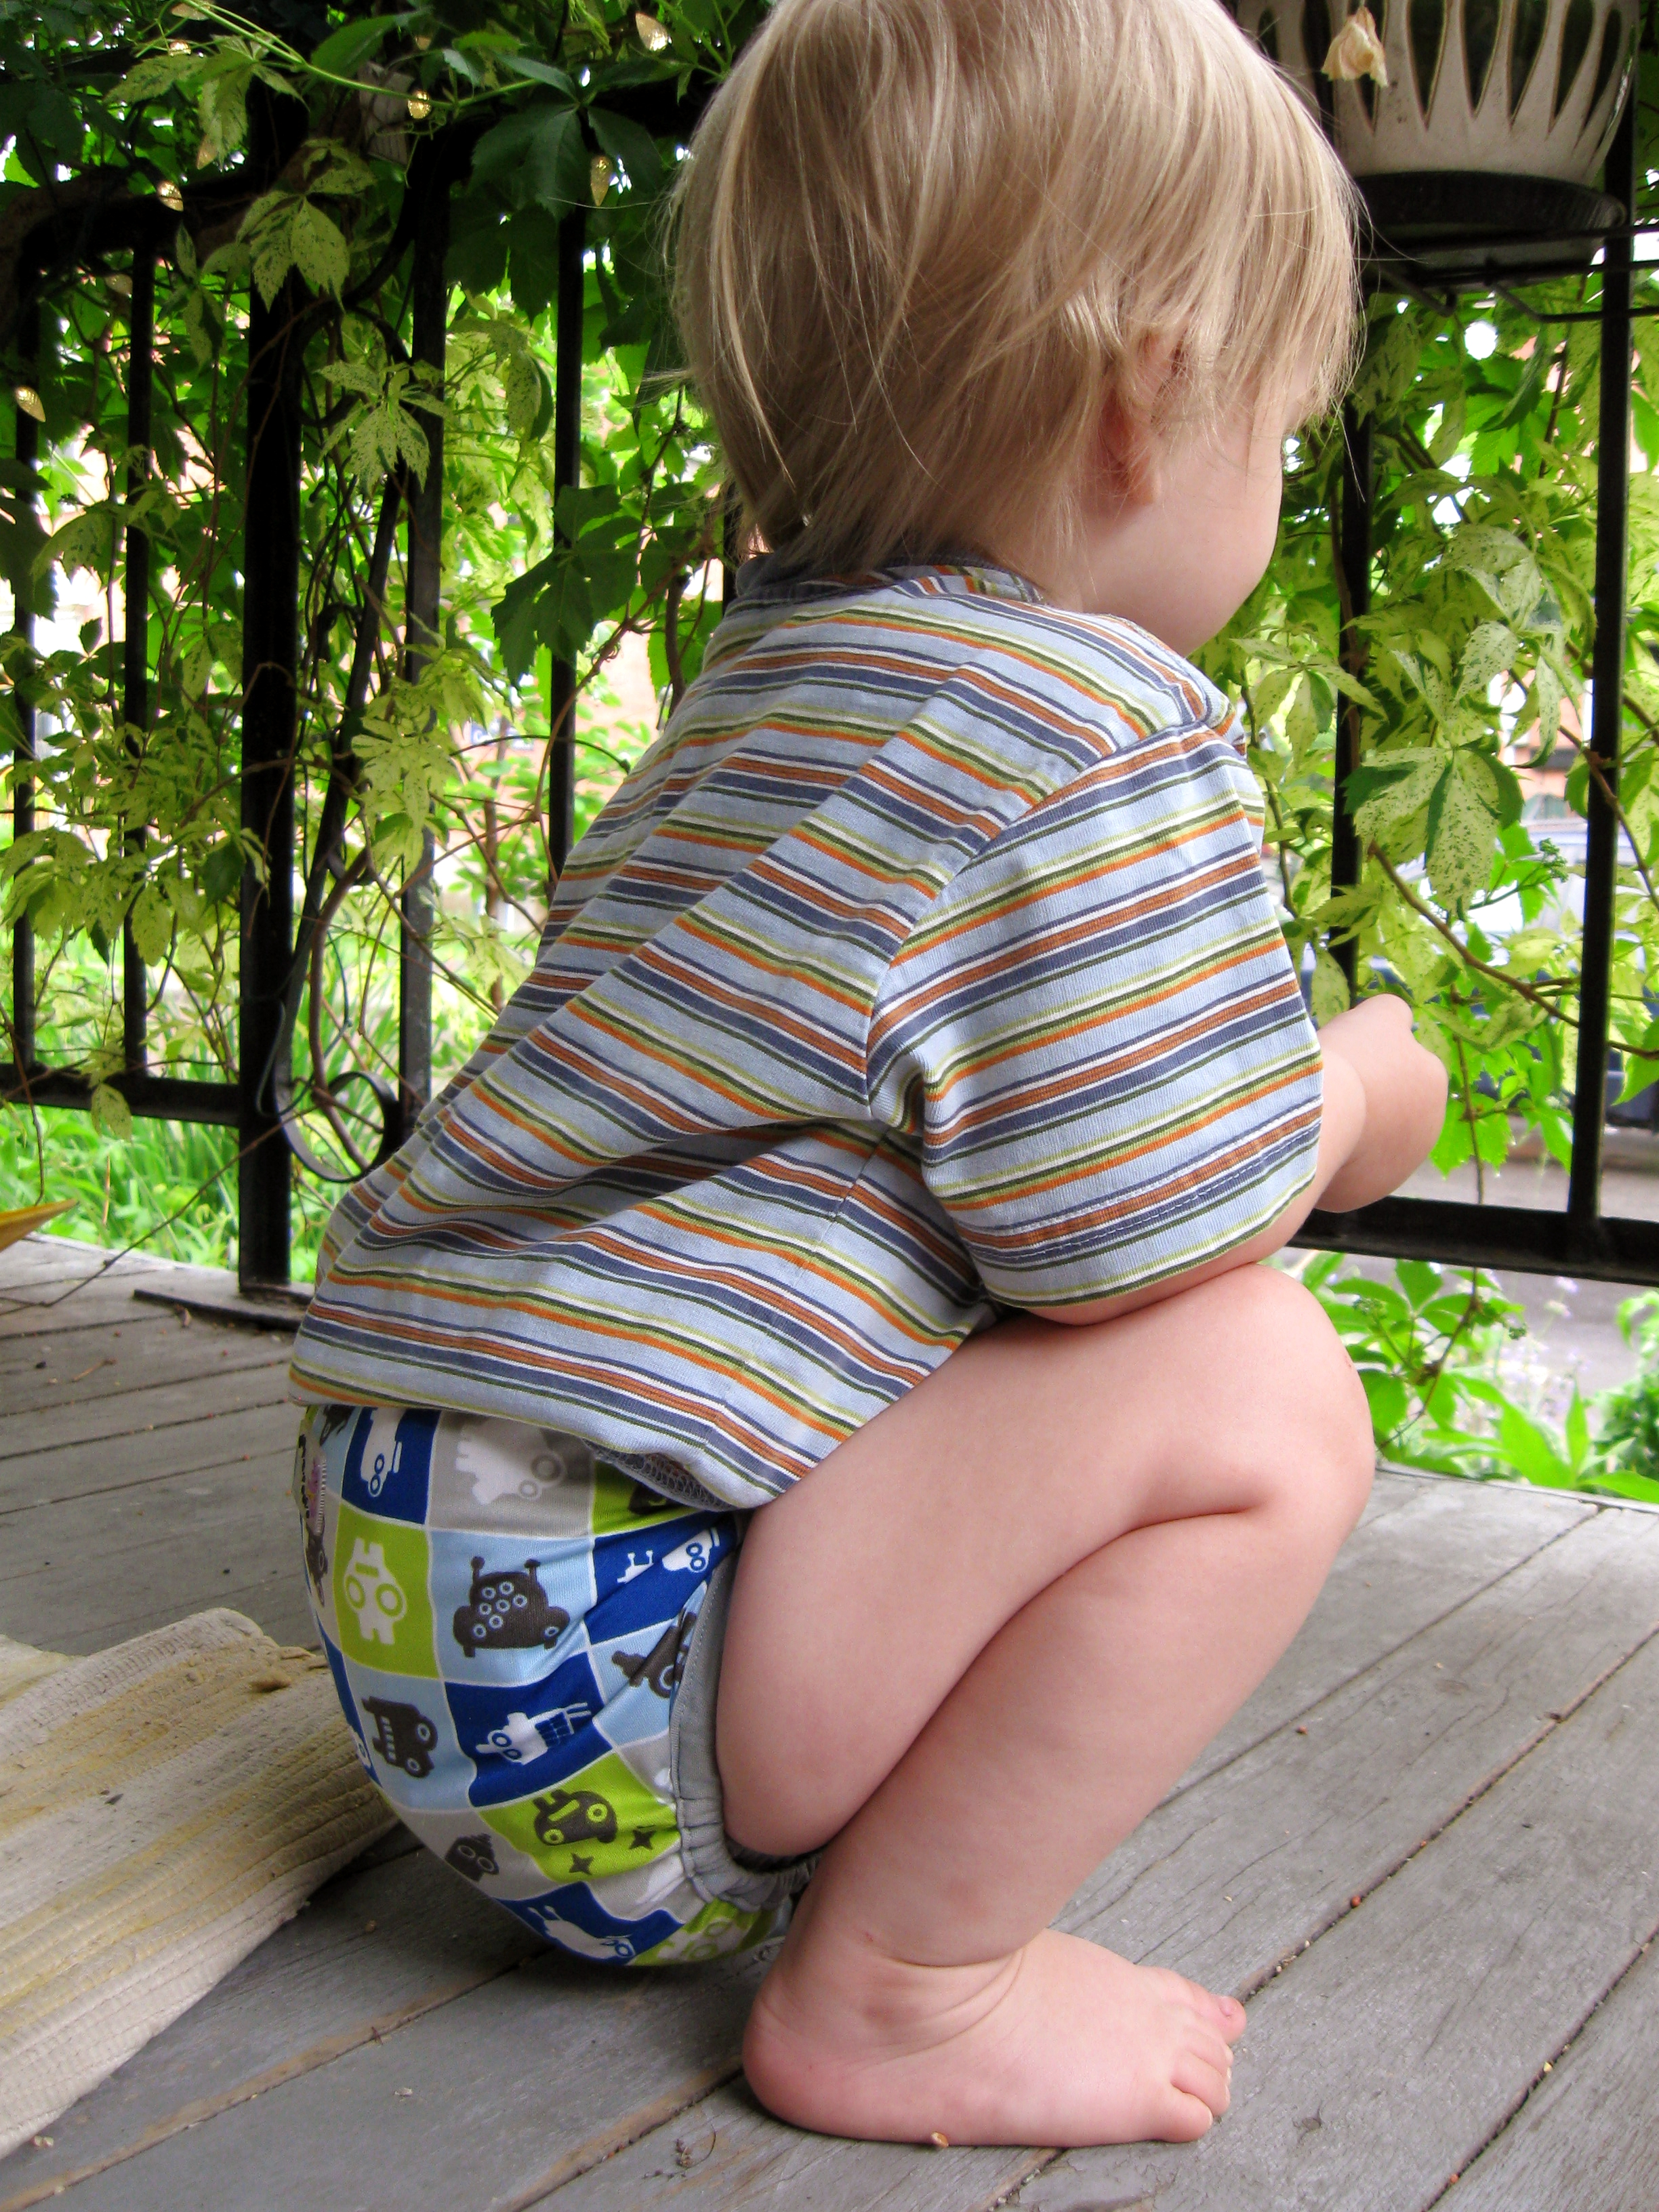 Apparently, 10 years of cloth diapering has me subconciously matching the t-shirts to covers -- this wasn't planned, I swear!